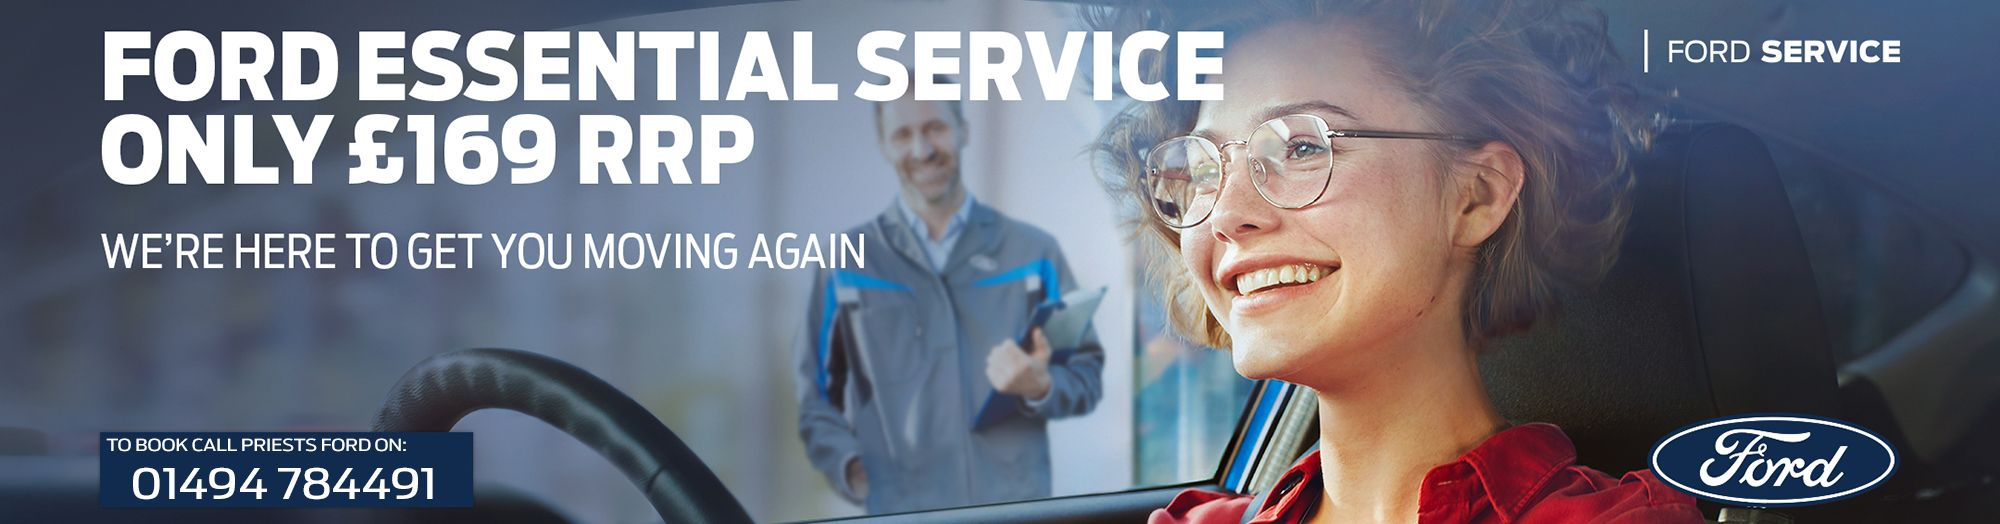 FORD ESSENTIAL SERVICING for £169 at Priests Ford